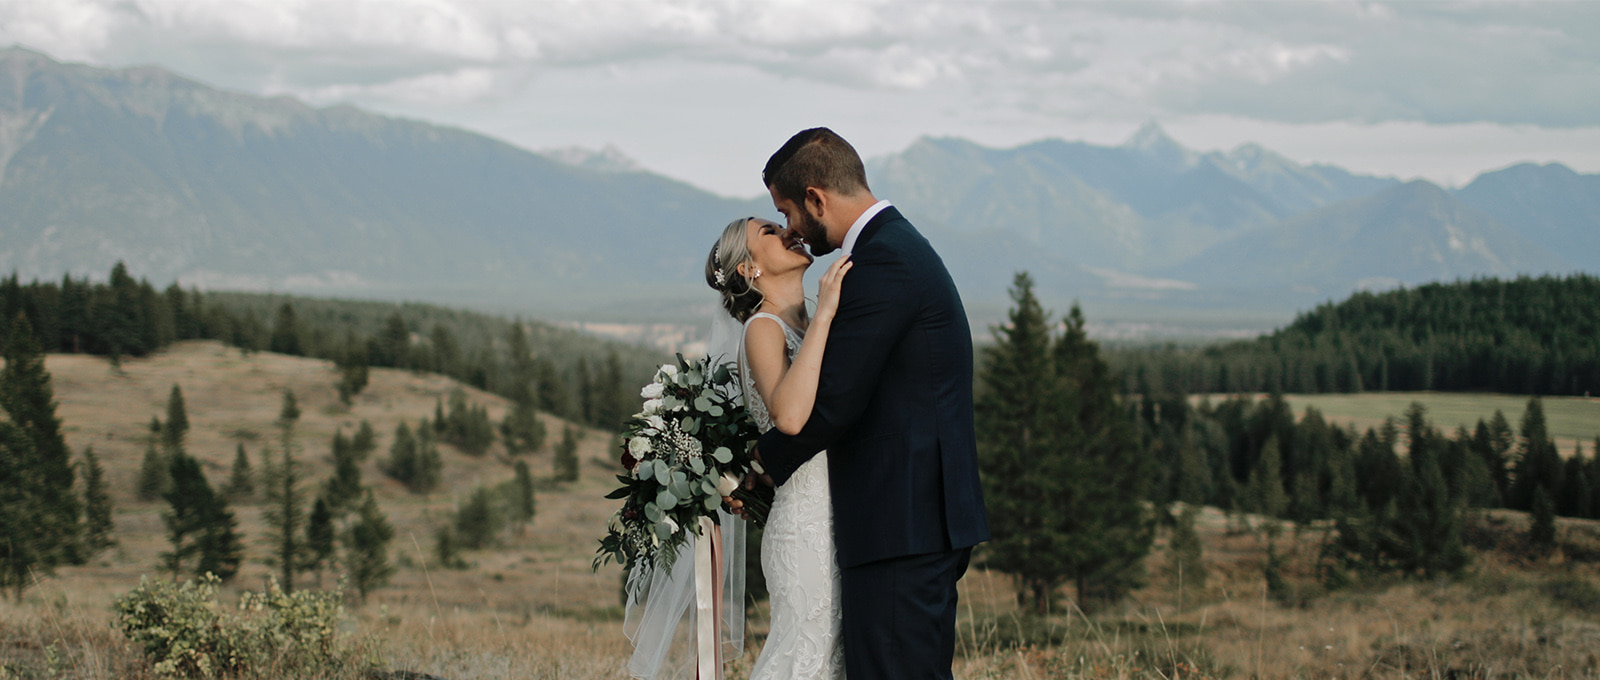 Meghan and Brendan - Calgary wedding video